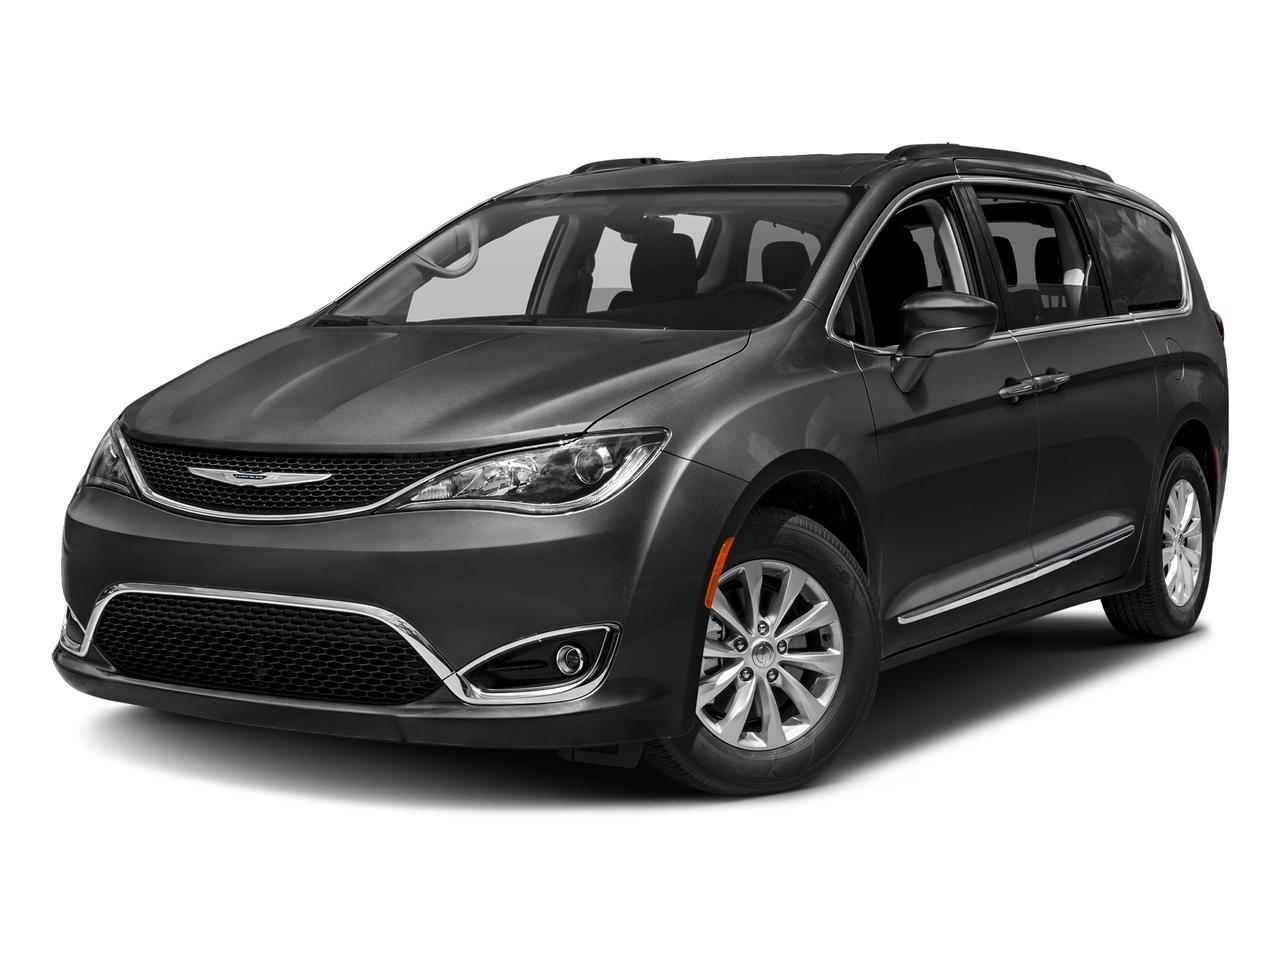 2017 Chrysler Pacifica Vehicle Photo in Paramus, NJ 07652